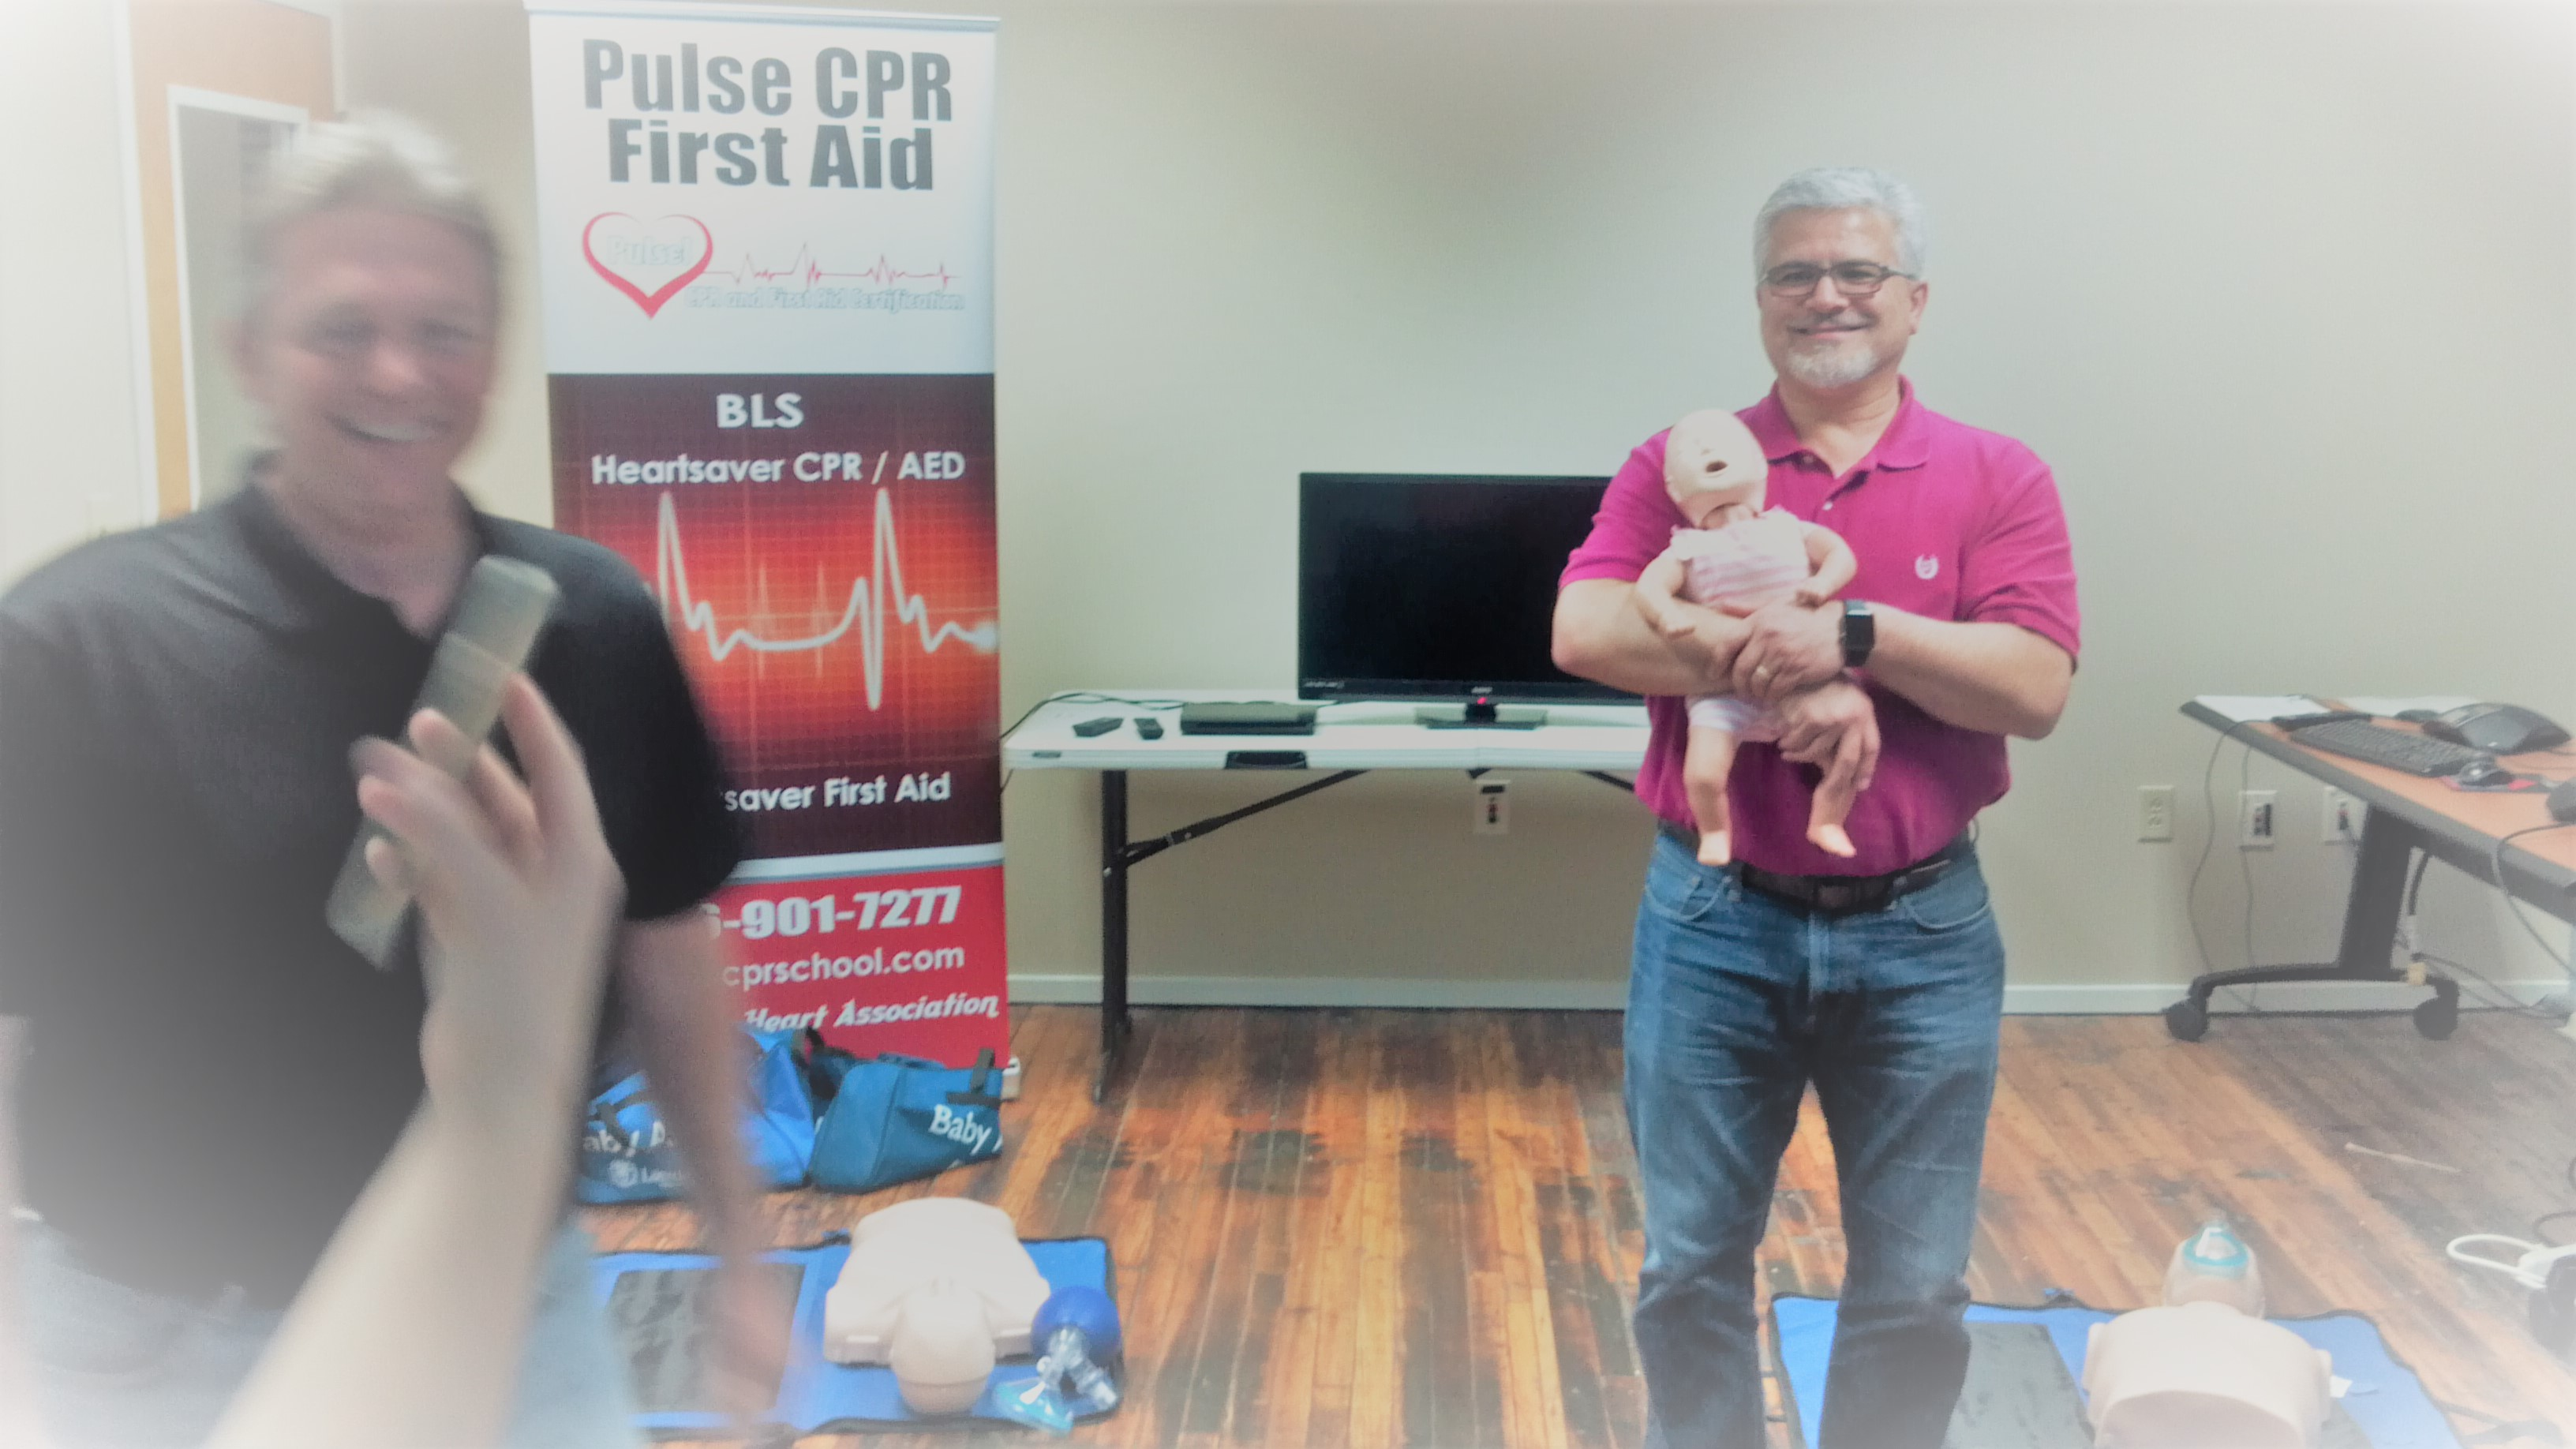 Cpr corporate cpr is a vital skill for all to learn xflitez Choice Image